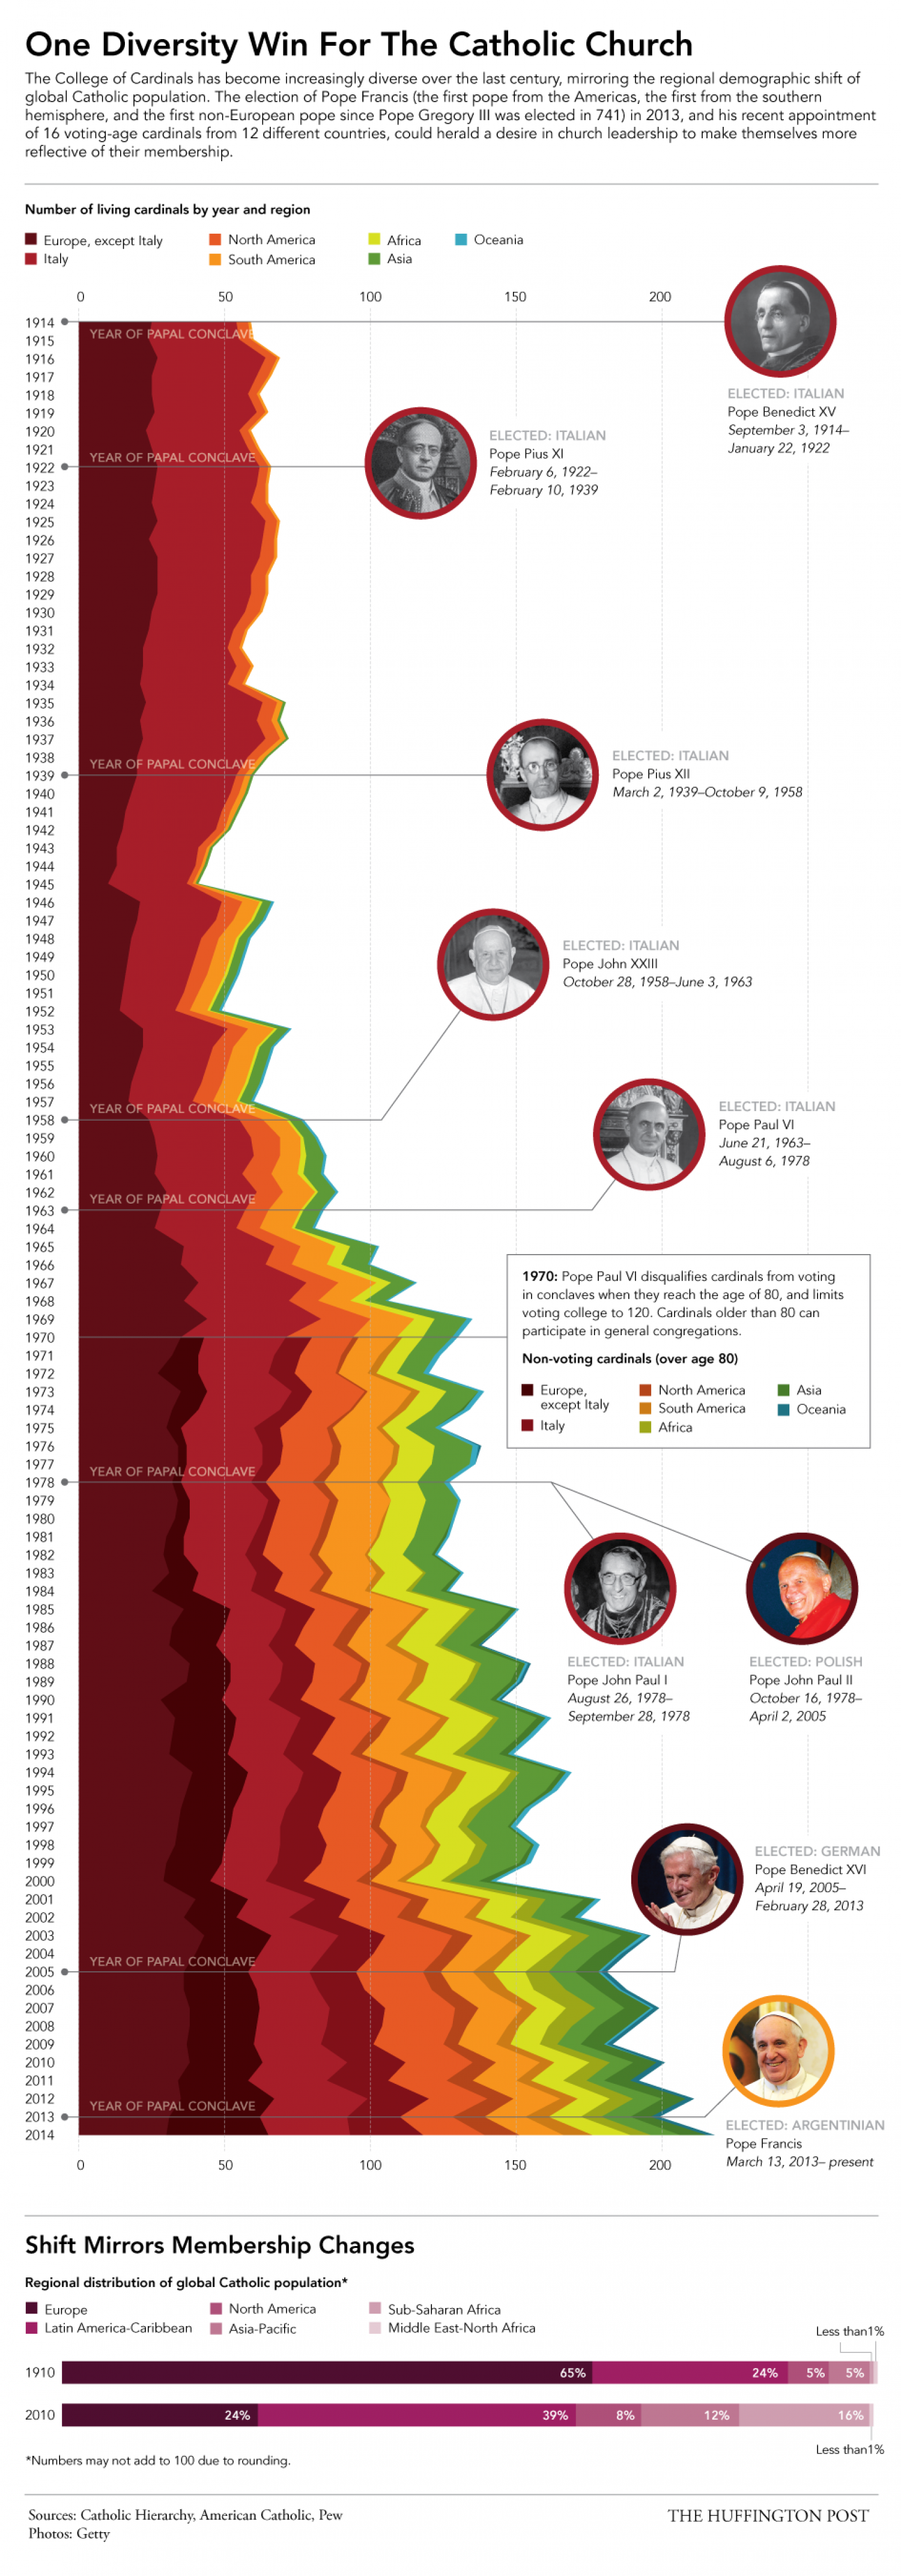 Radical Change In Catholic Church Over The Last 100 Years Infographic